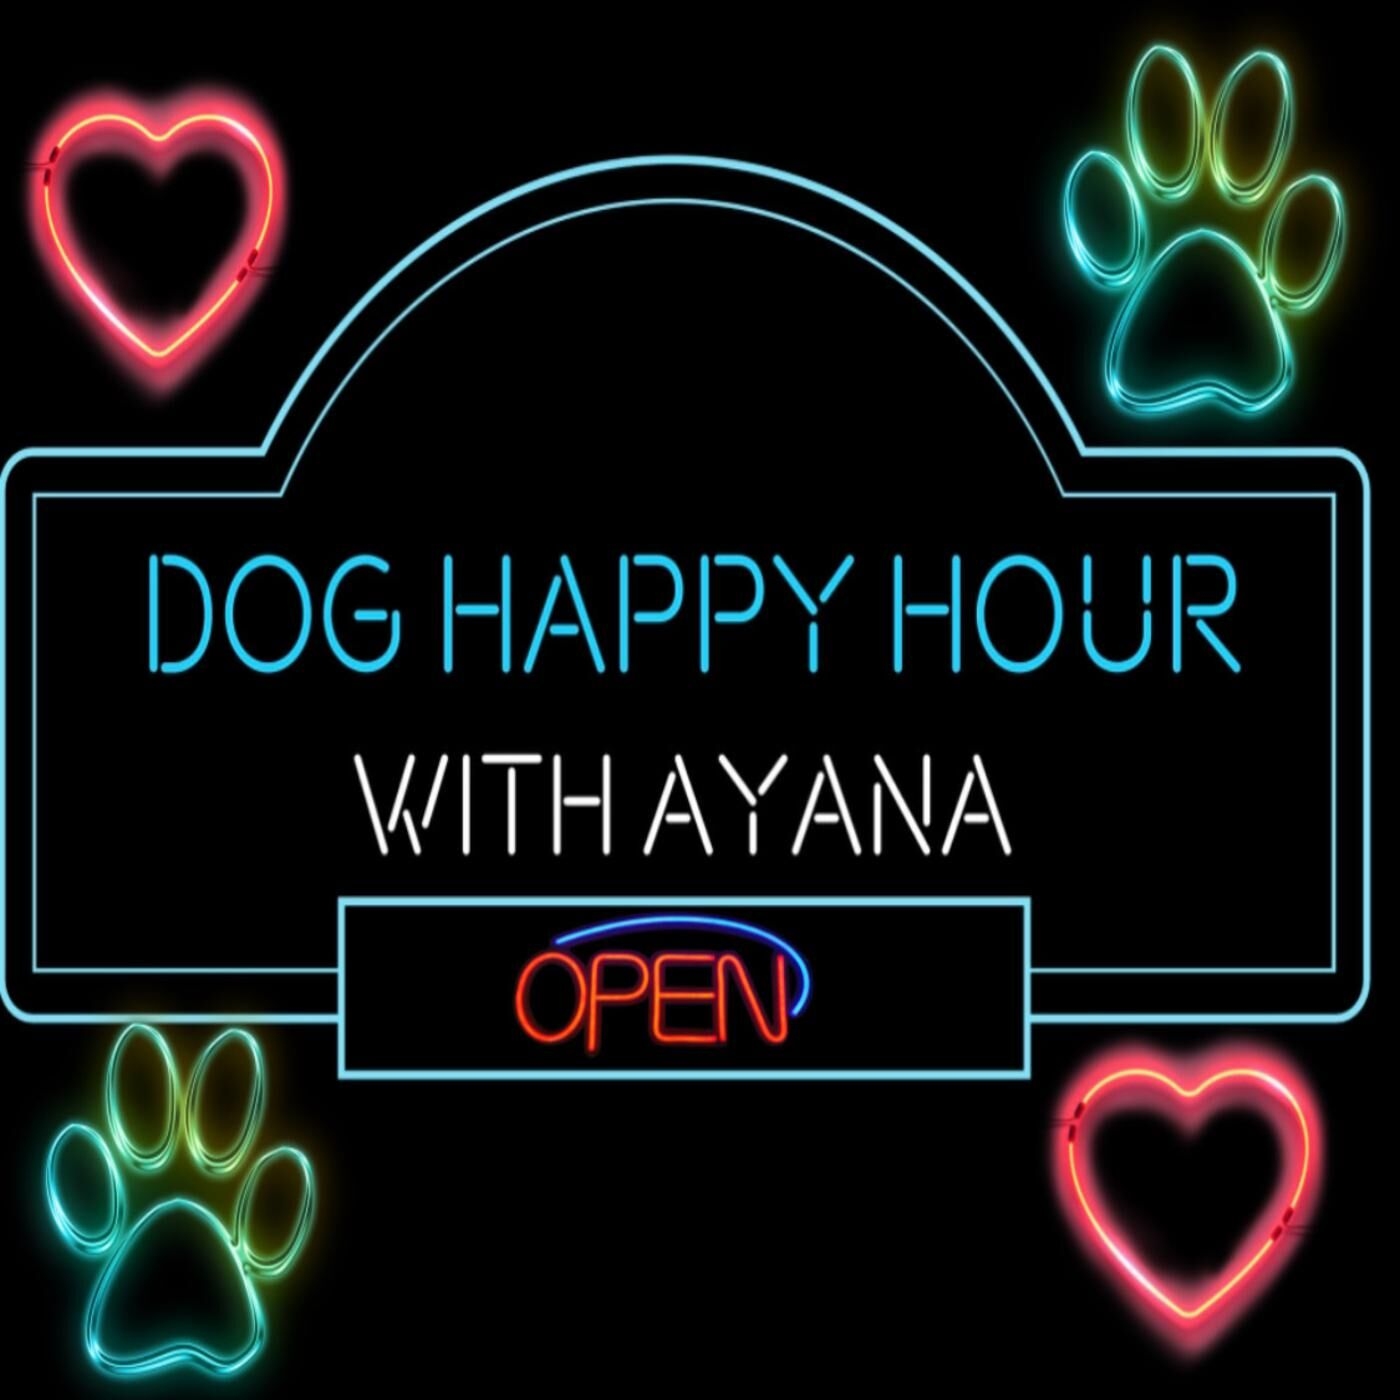 Dog Happy Hour With Ayana